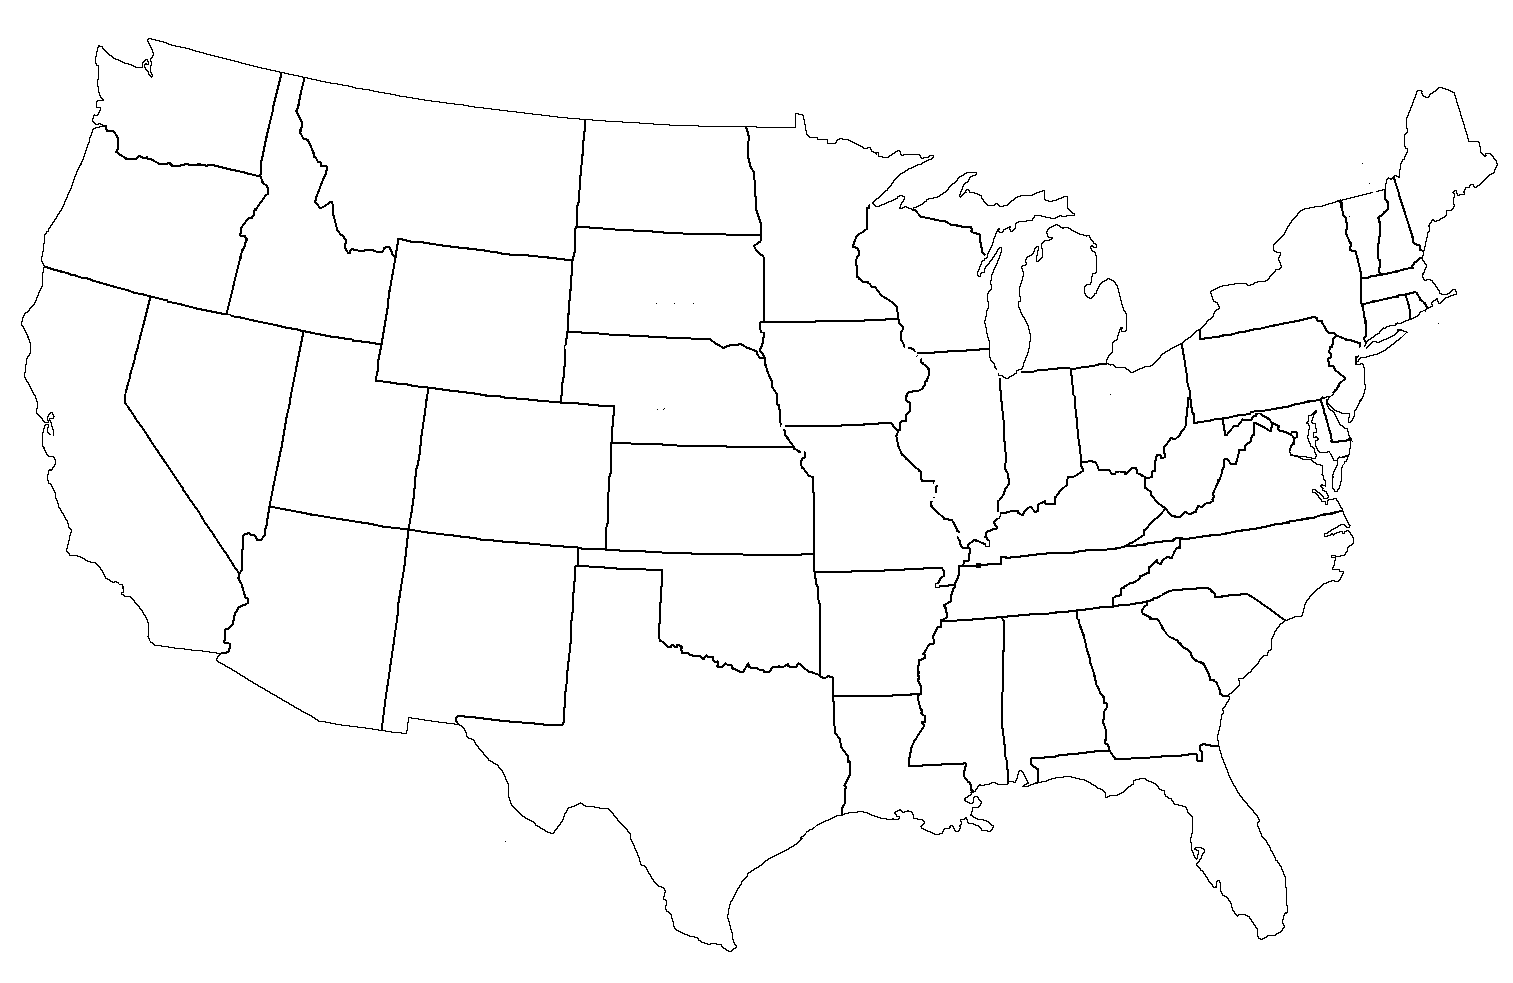 Blank Page Of The United States - Blank us map with states